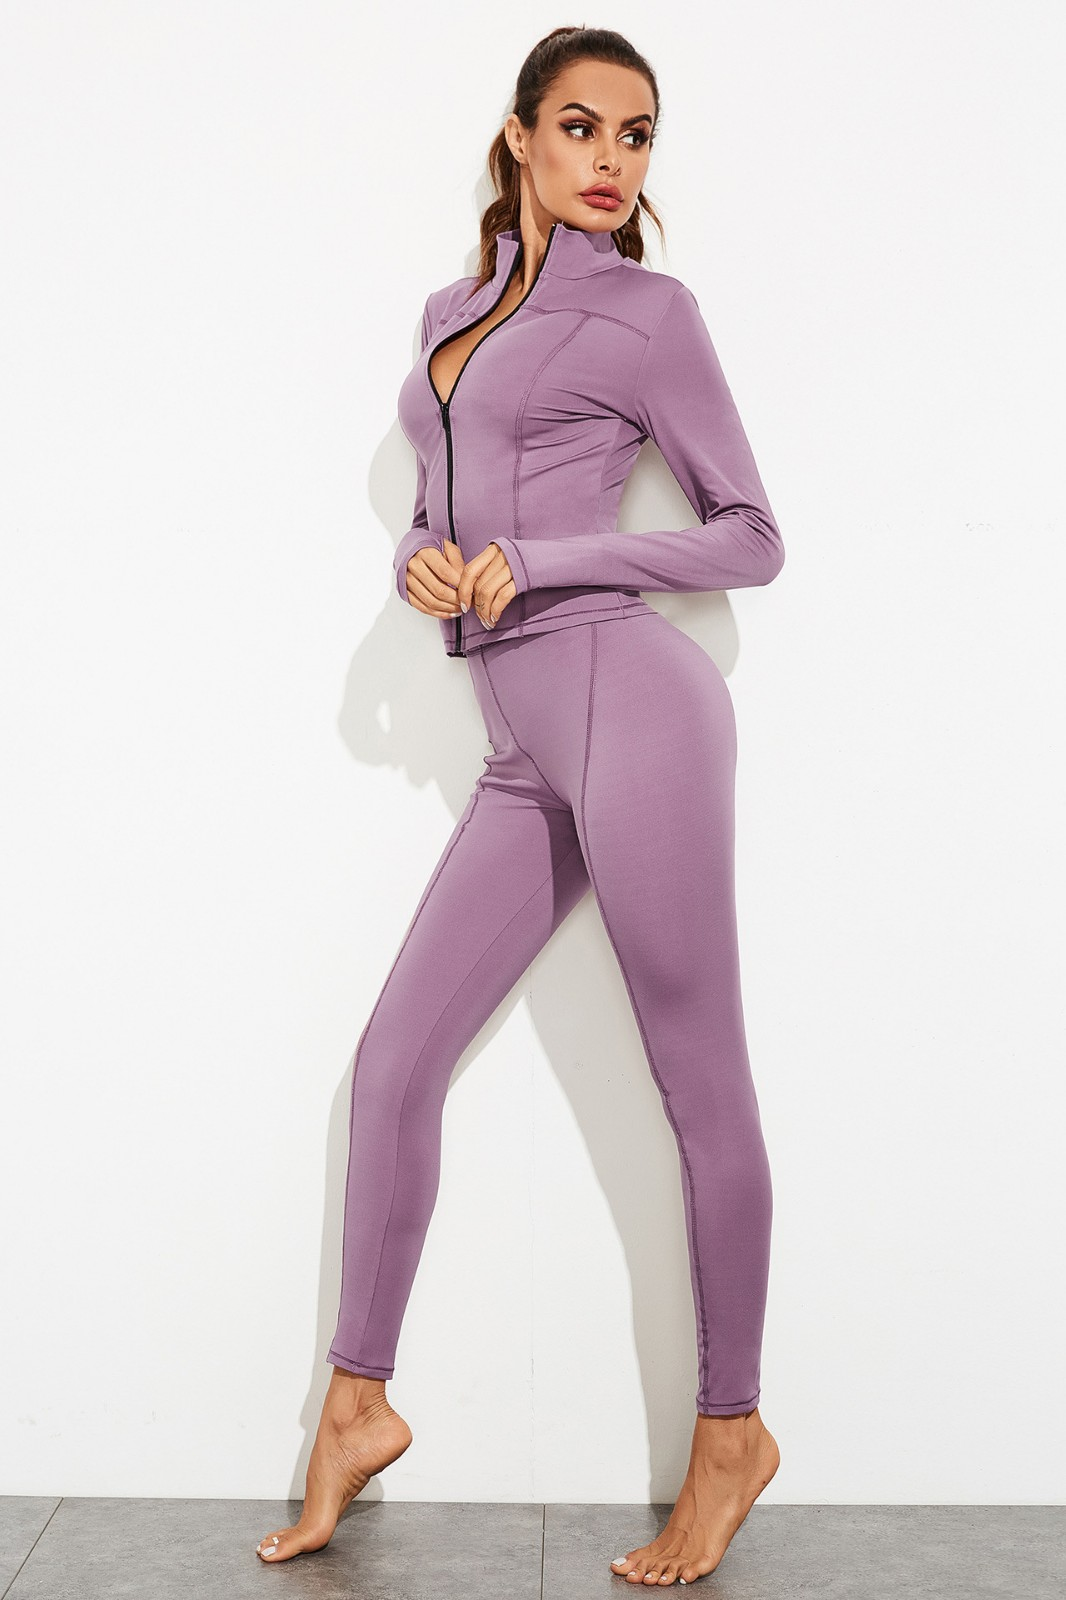 product-Gym Fitness Clothing Women Tight Long Sleeves Women Suit Sport Wear yoga with Zipper-Ruiteng